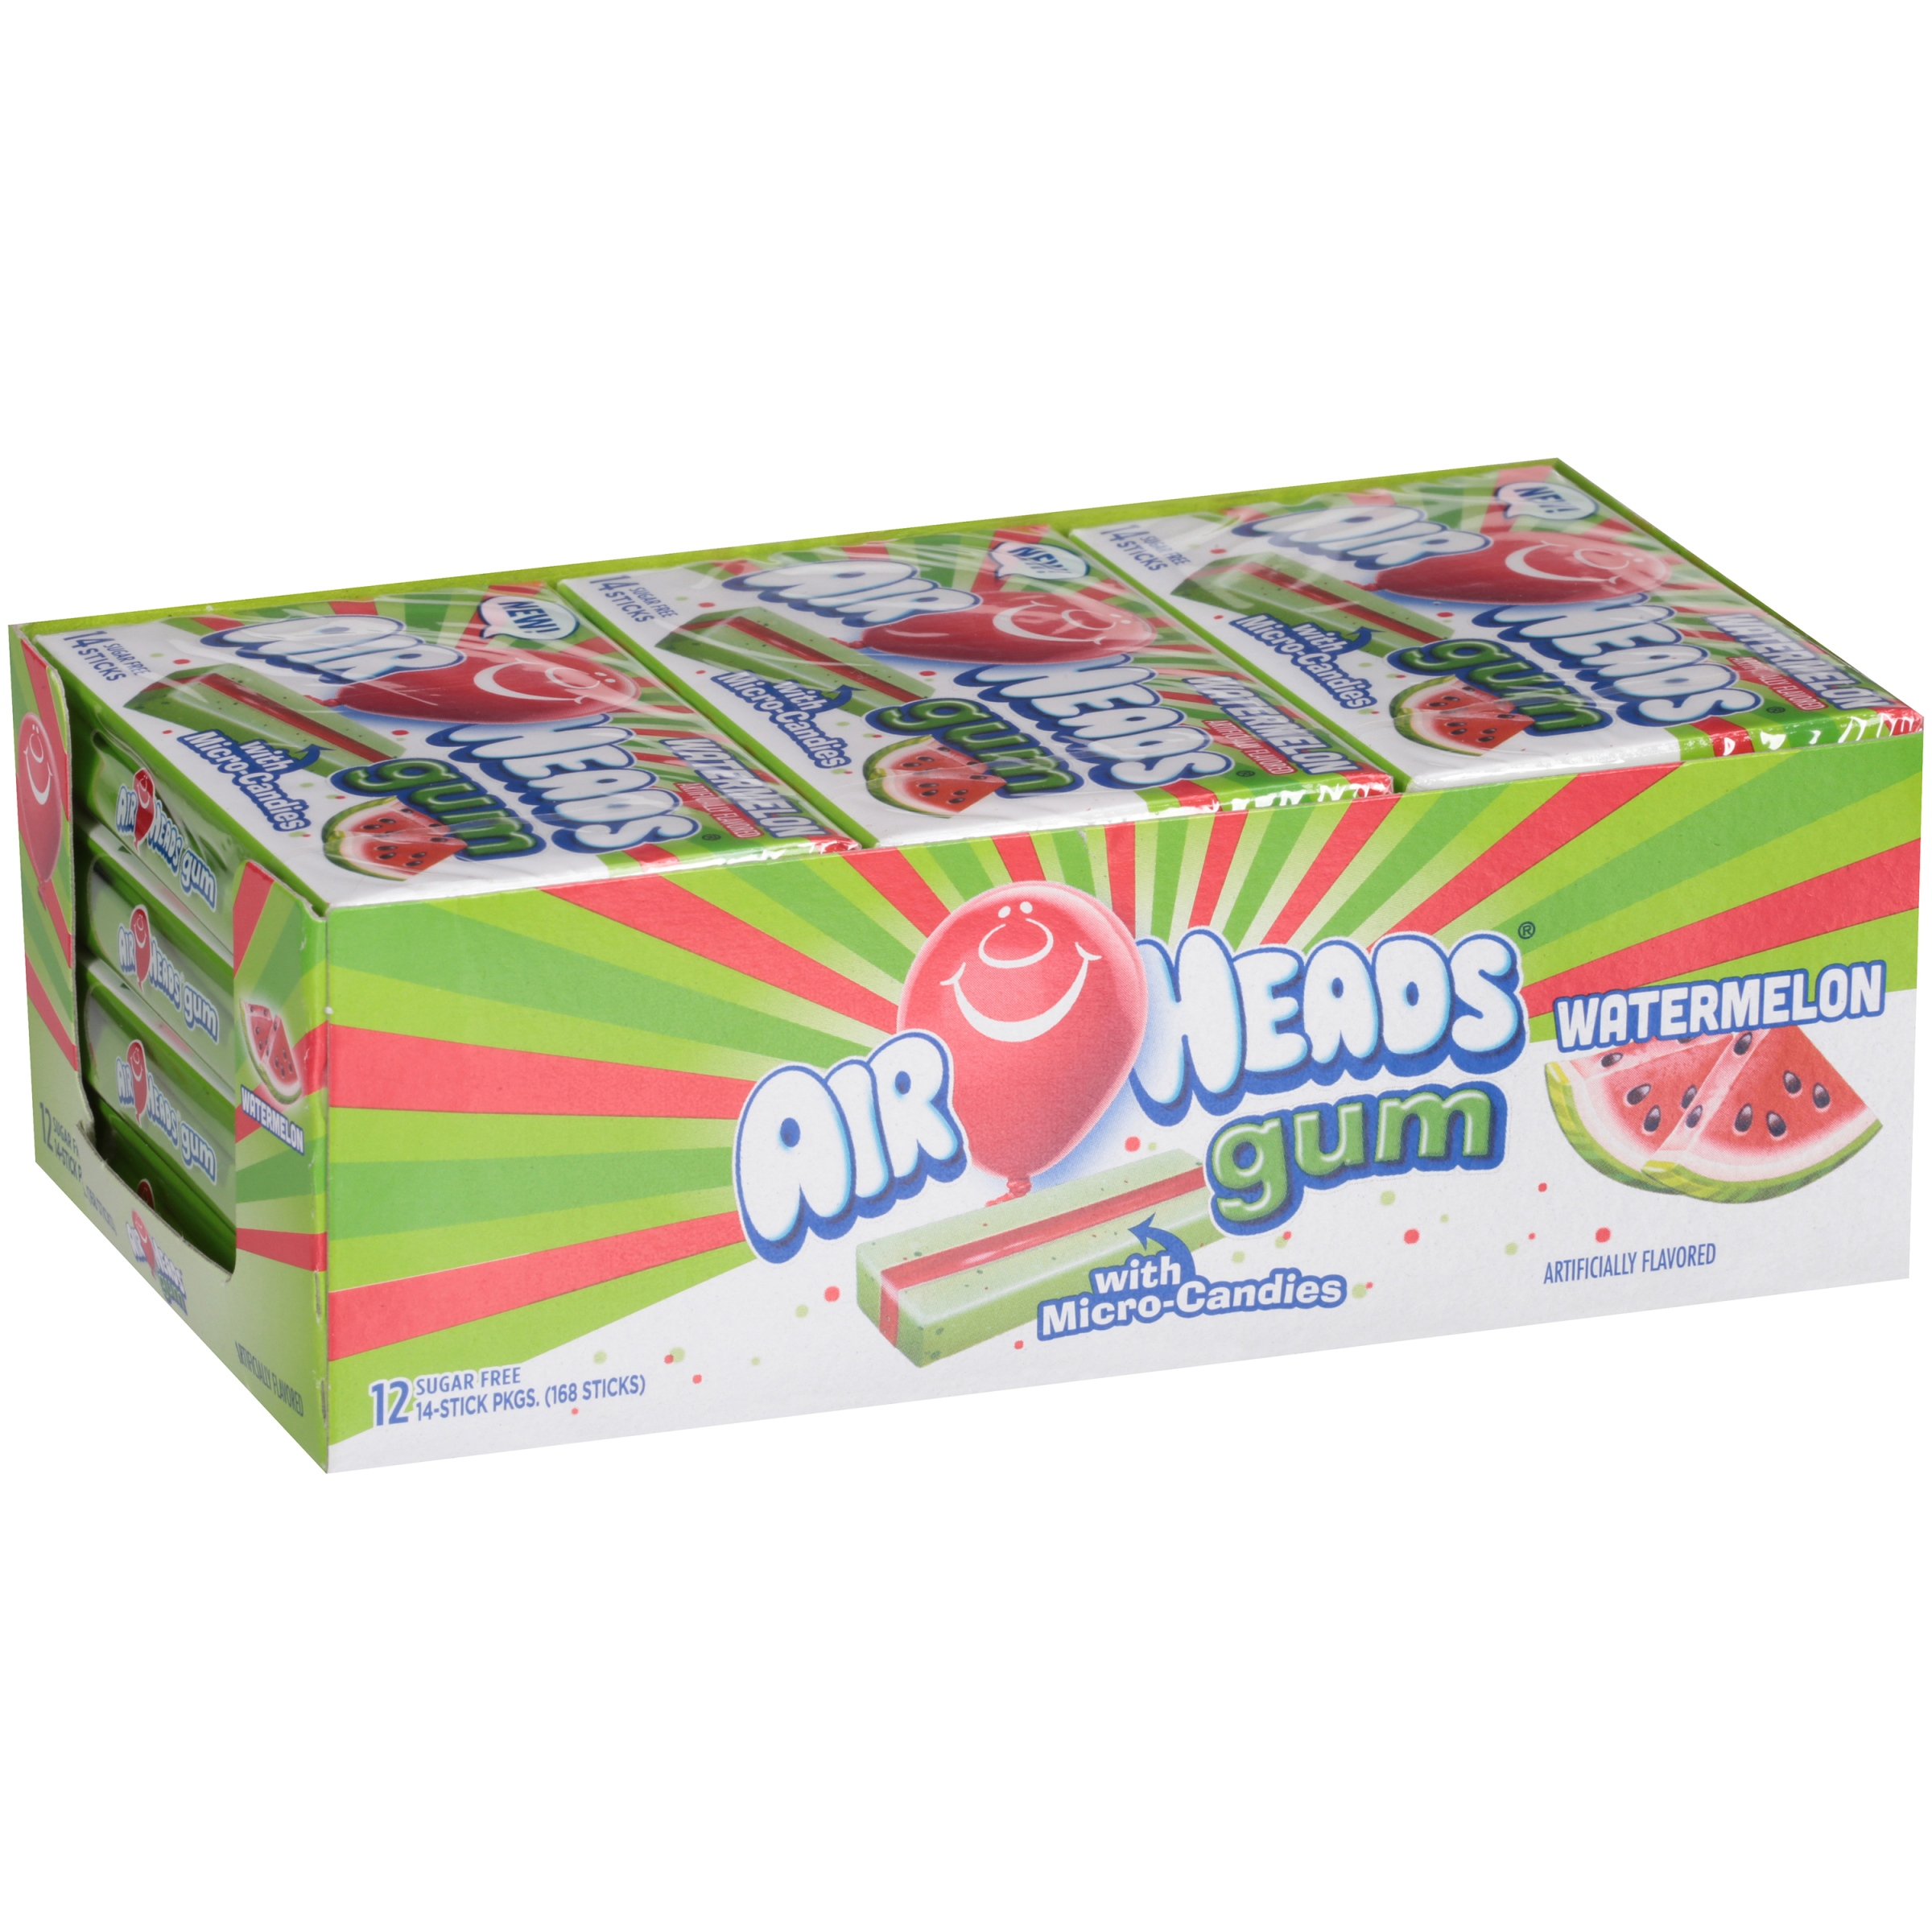 Image of Airheads Gum Watermelon 14 Piece Wallet Pack - Pack of 12